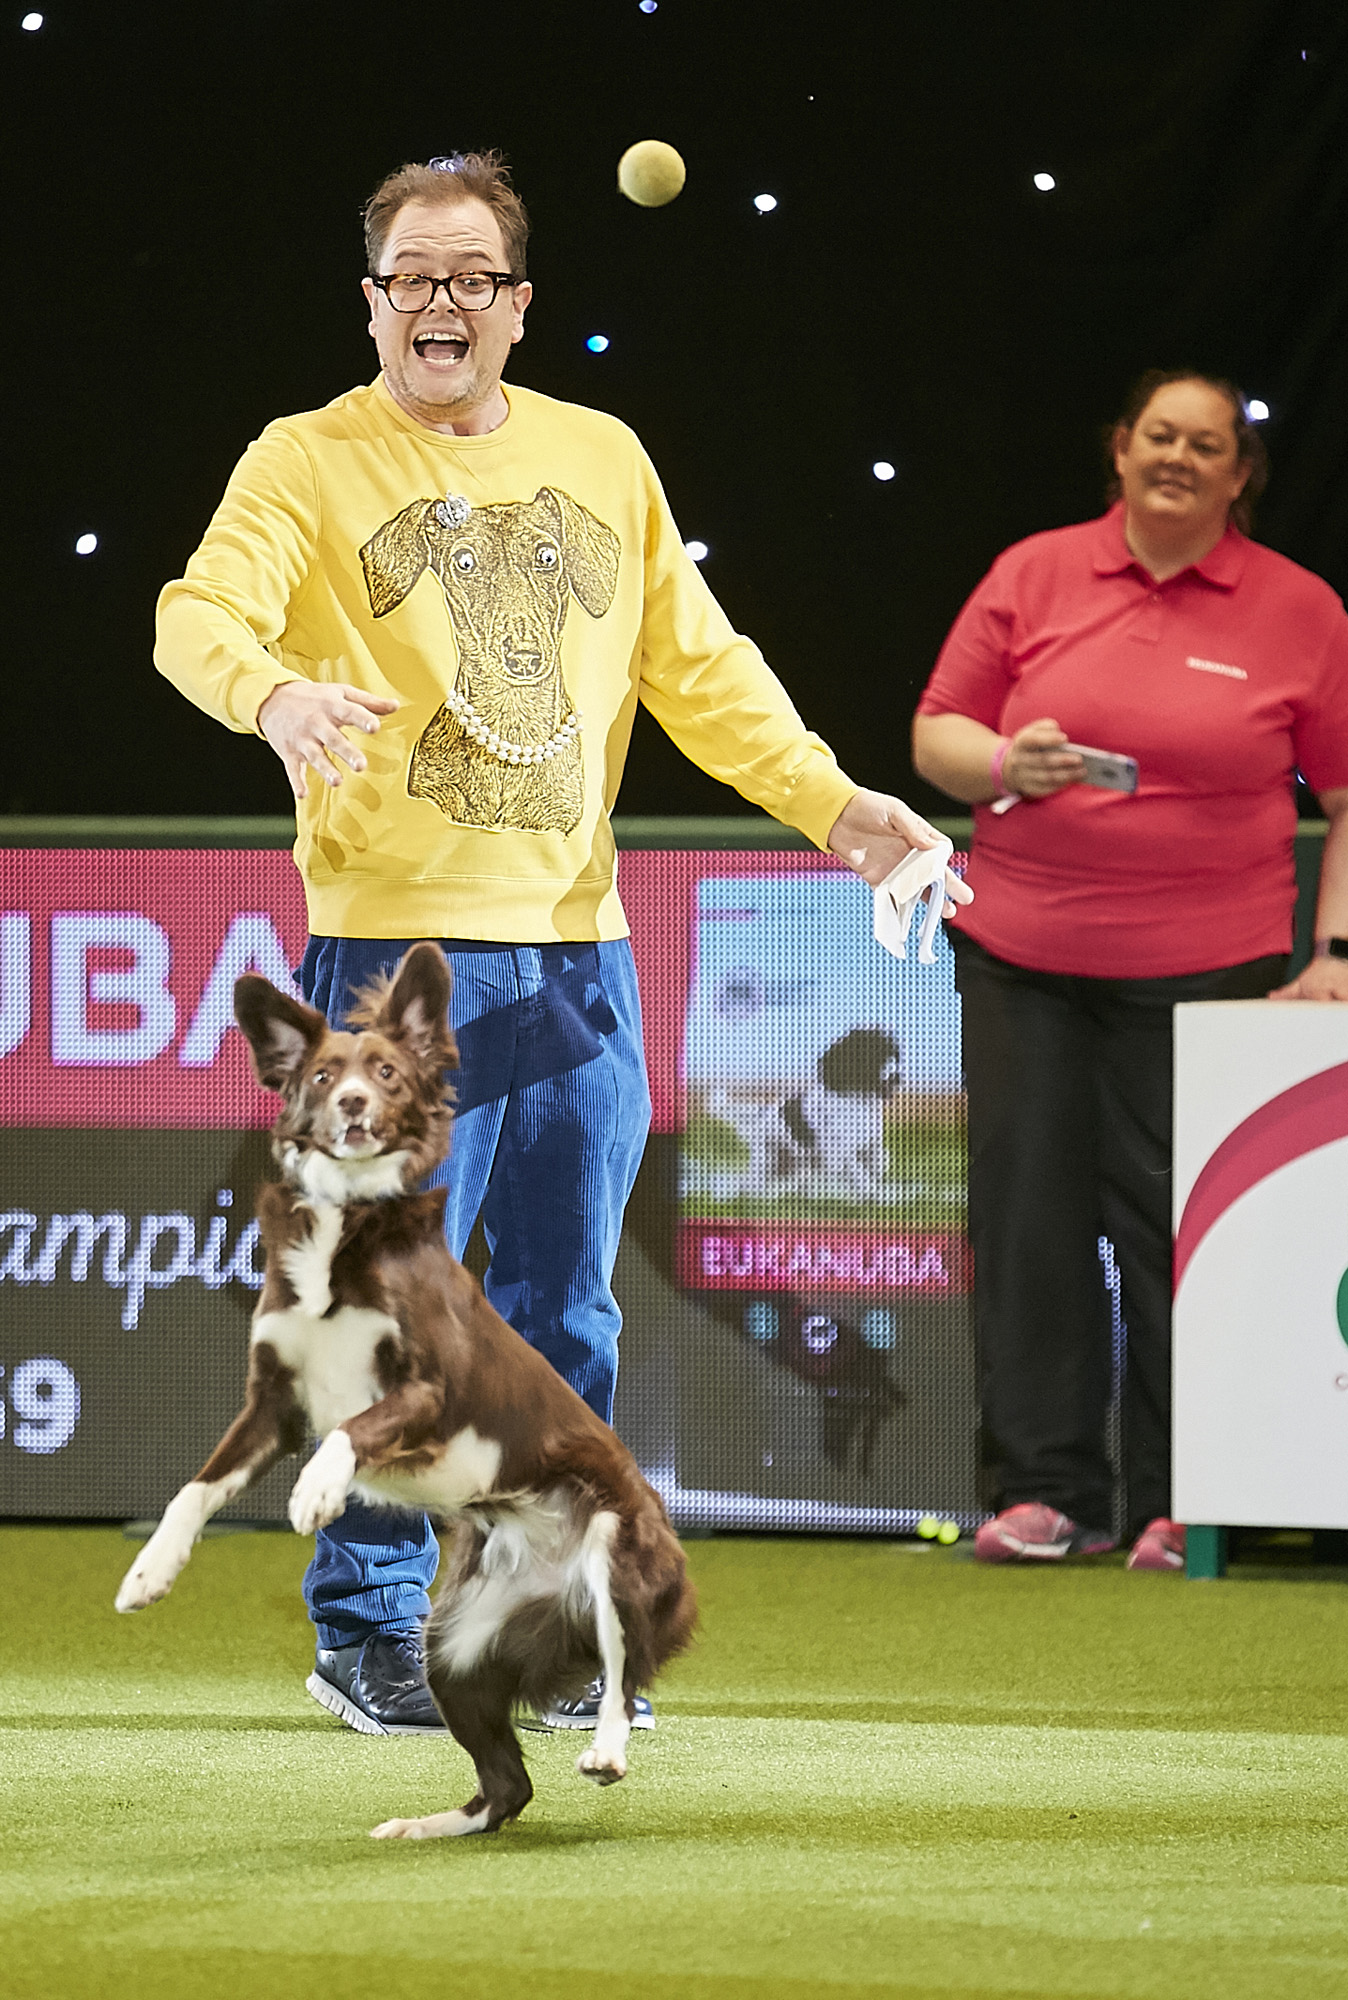 Crufts is the world's greatest dog show and this year will see more than 21,000 healthy, happy dogs competing for the coveted 'Best in Show' title as well as taking part in the many other competitions that take place at the show, from Agility and Flyball to the hero dog competition Eukanuba Friends for Life and Scruffts Family Crossbreed of the Year. Crufts 2018 runs from the 8th to the 11th March at the NEC, Birmingham.